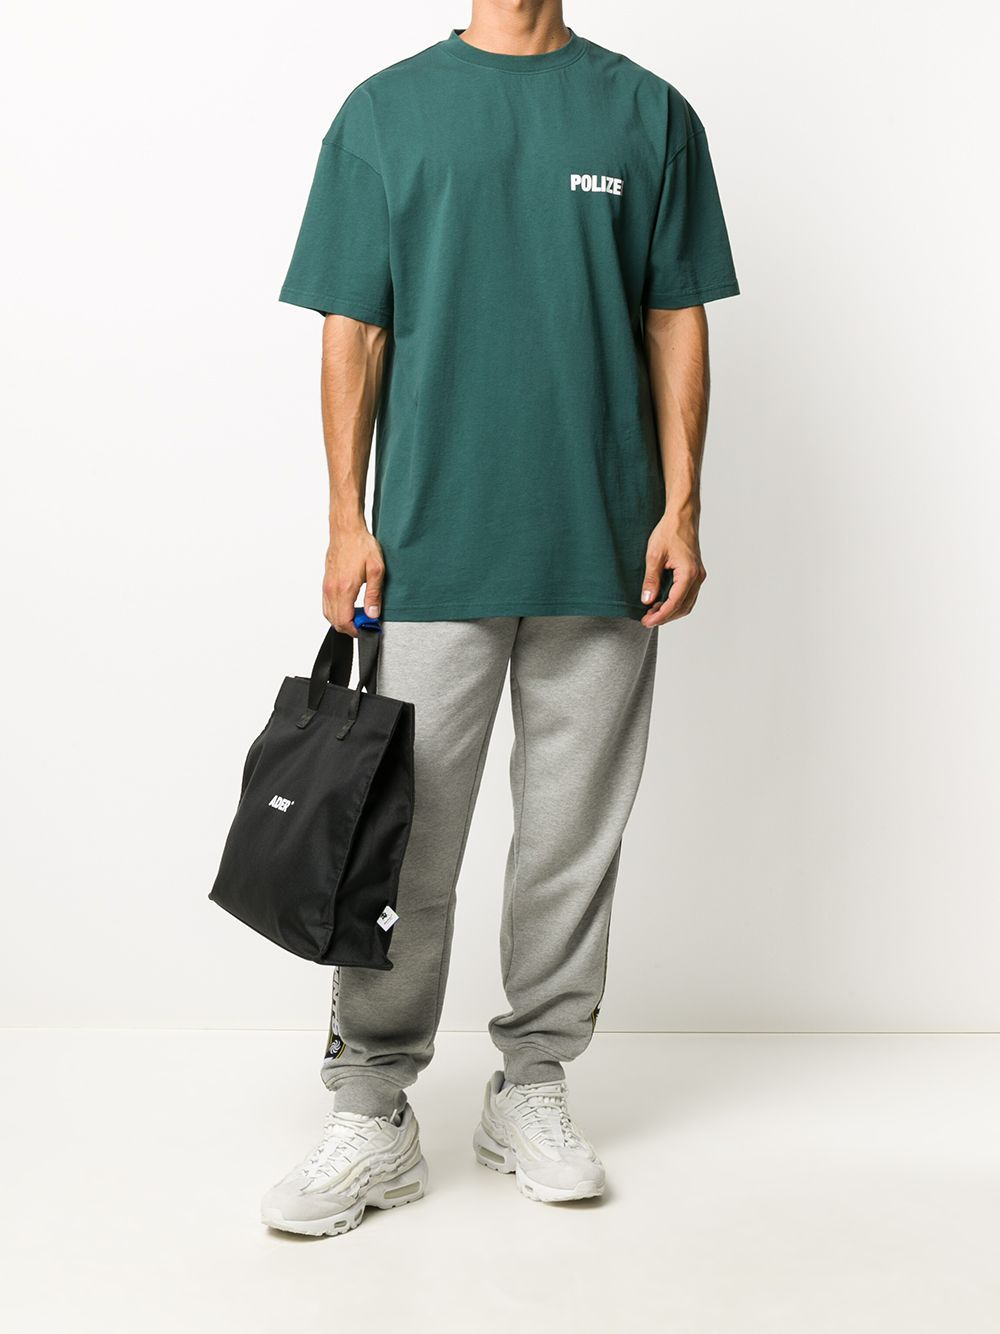 VETEMENTS polizei logo t-shirt green